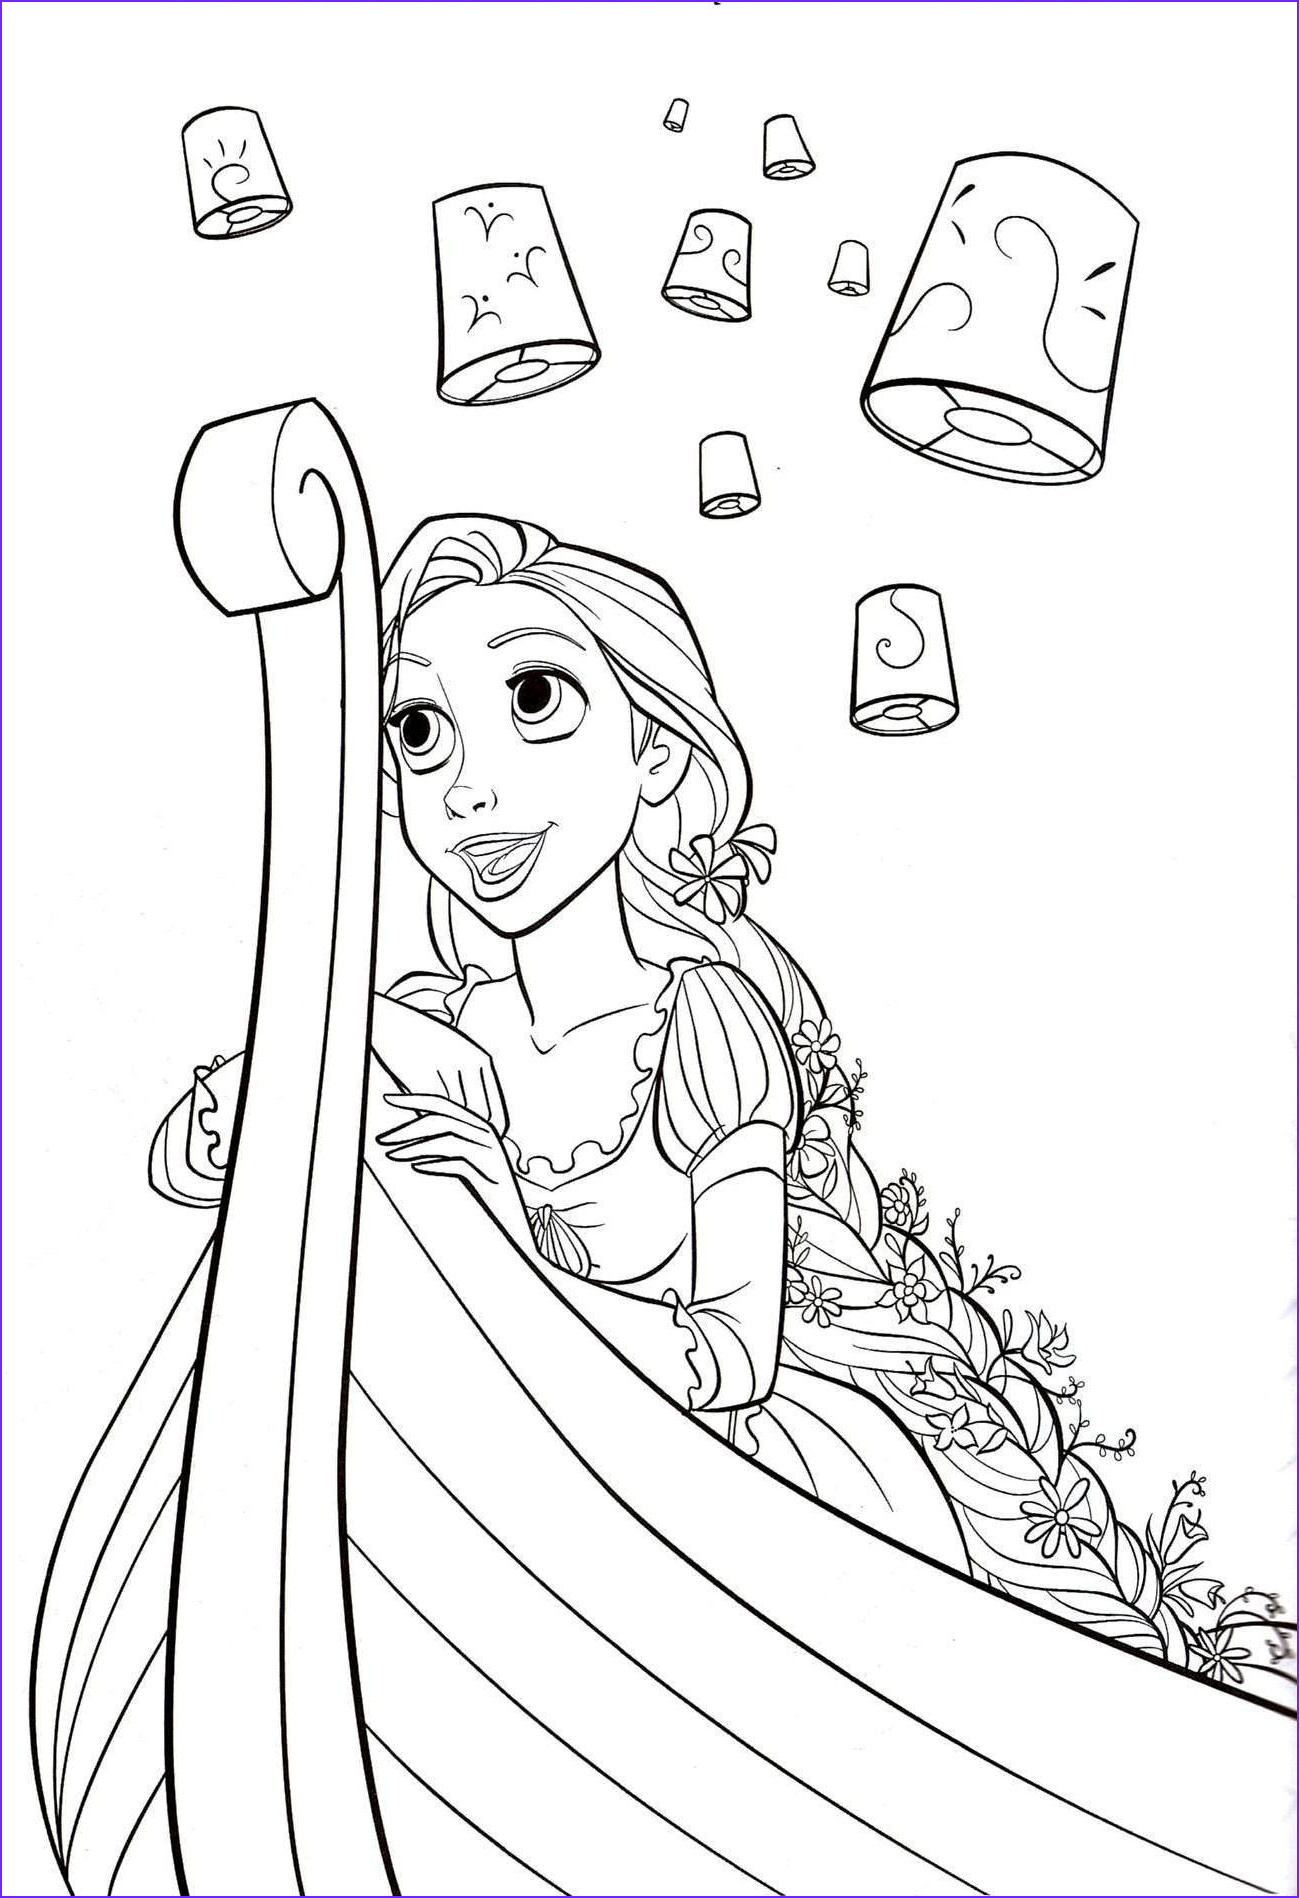 Disney Adult Coloring Pages Awesome Image Nautical Coloring Pages to and Print for Free